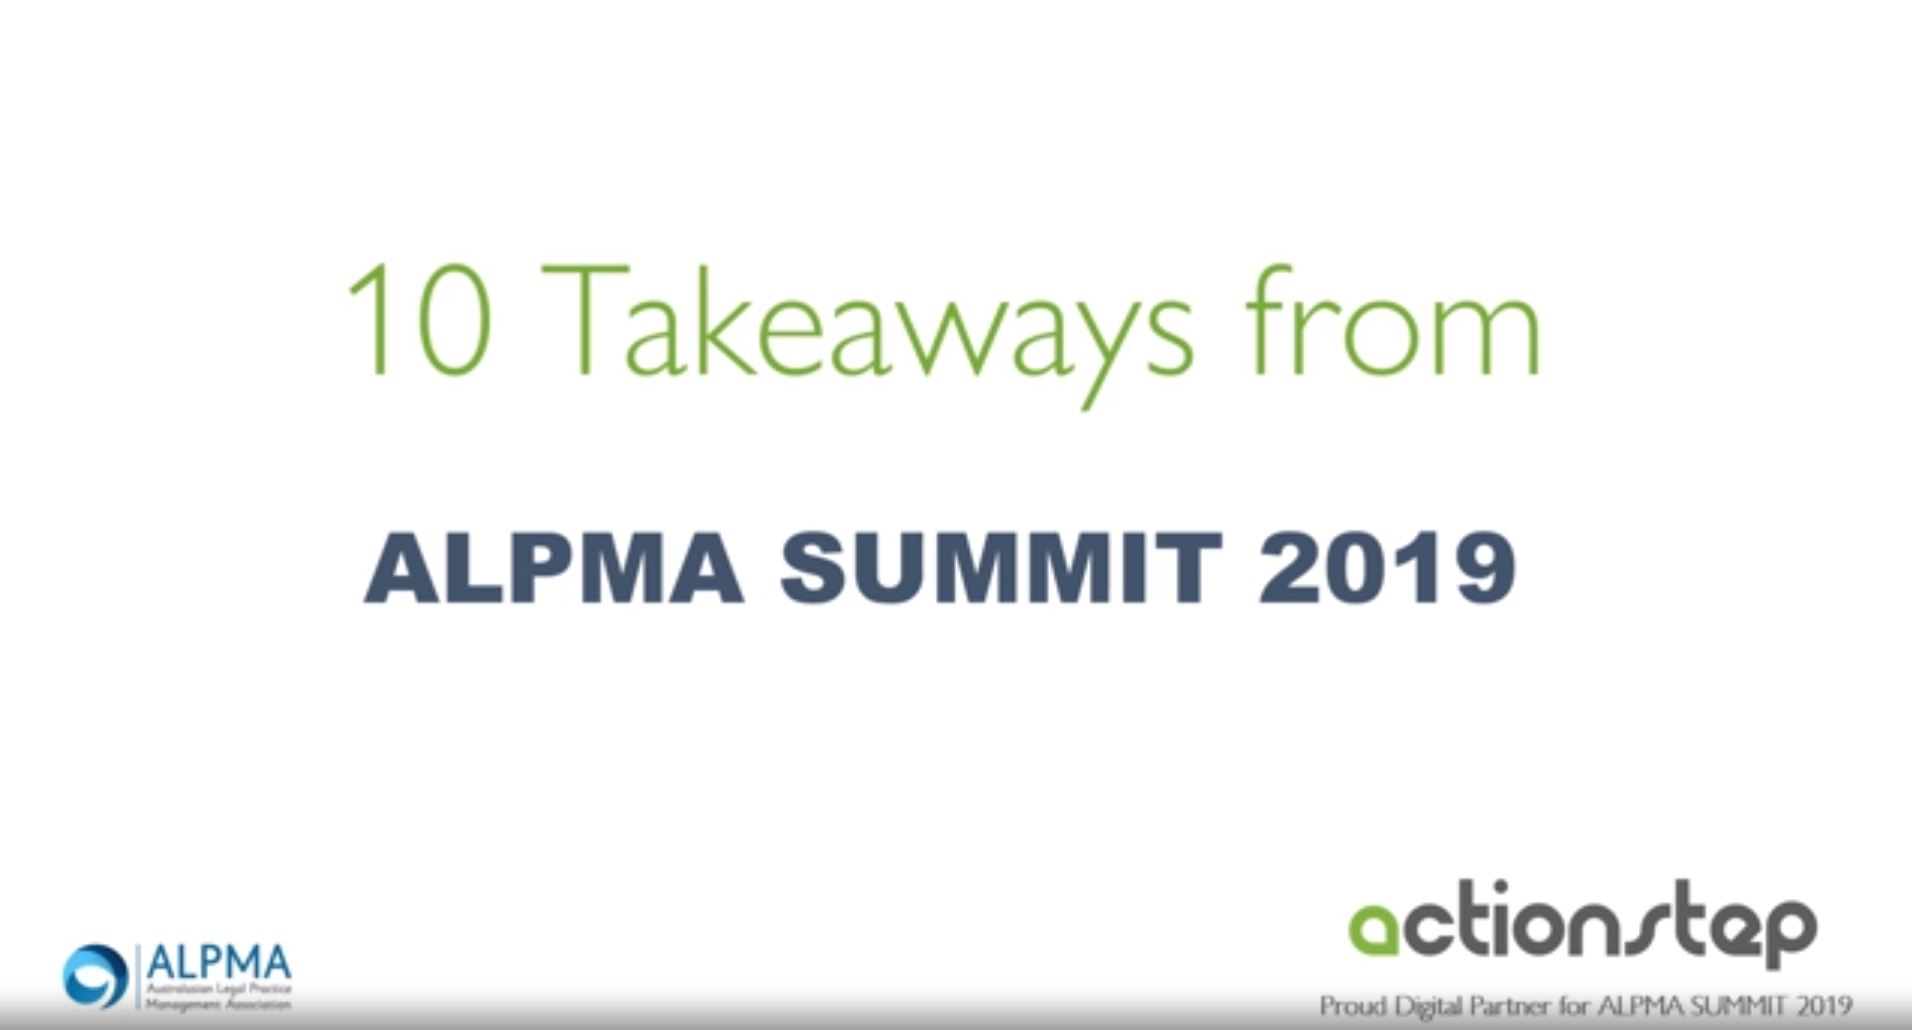 Things we learned at ALPMA